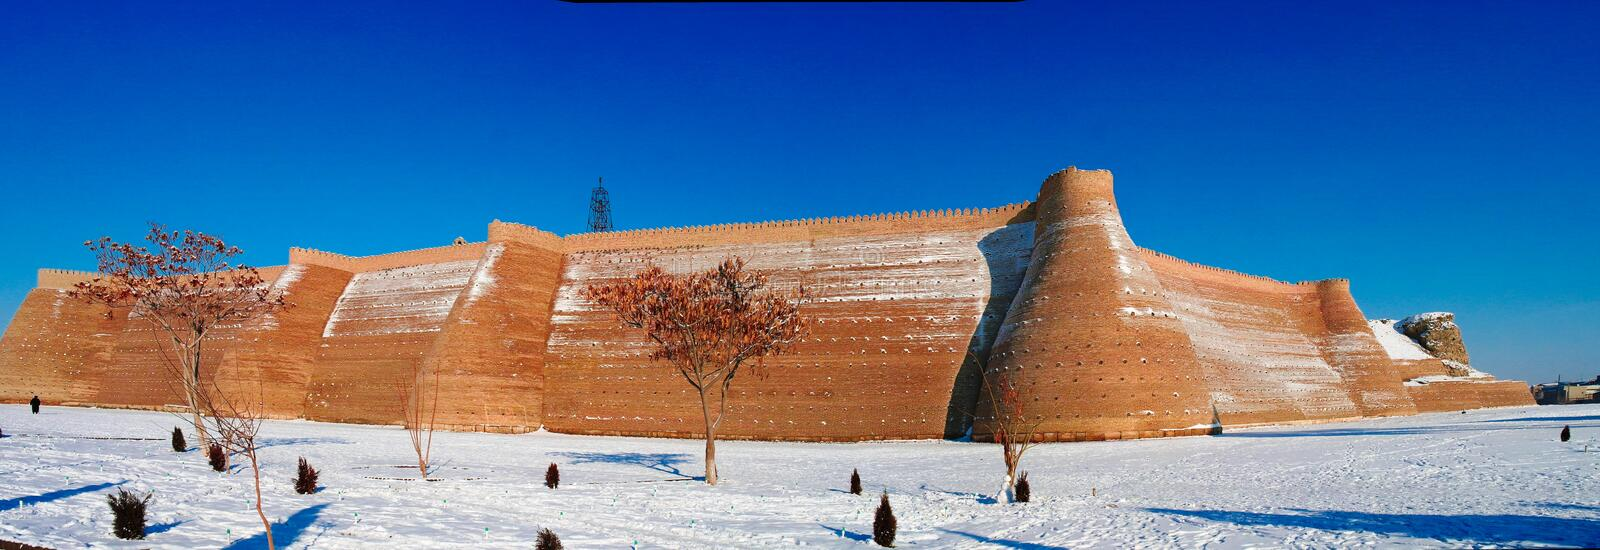 Winter panoramic view to Ark fortress of Bukhara, Uzbekistan royalty free stock images